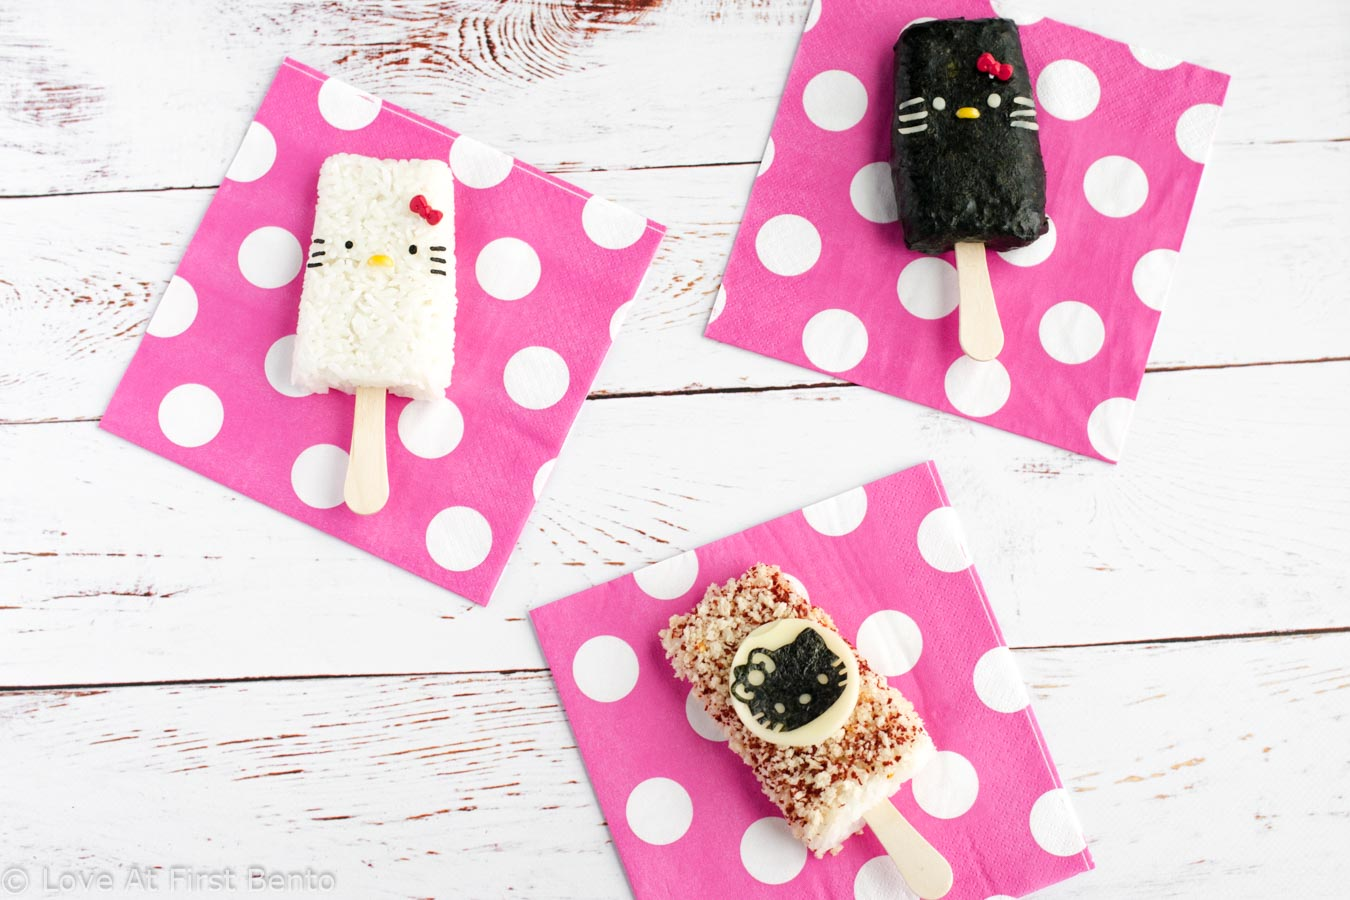 Hello Kitty Rice Popsicles - Easily shape your rice into popsicles by using a standard popsicle mold! Find out how at loveatfirstbento.com | bento box, character bento, cute food.